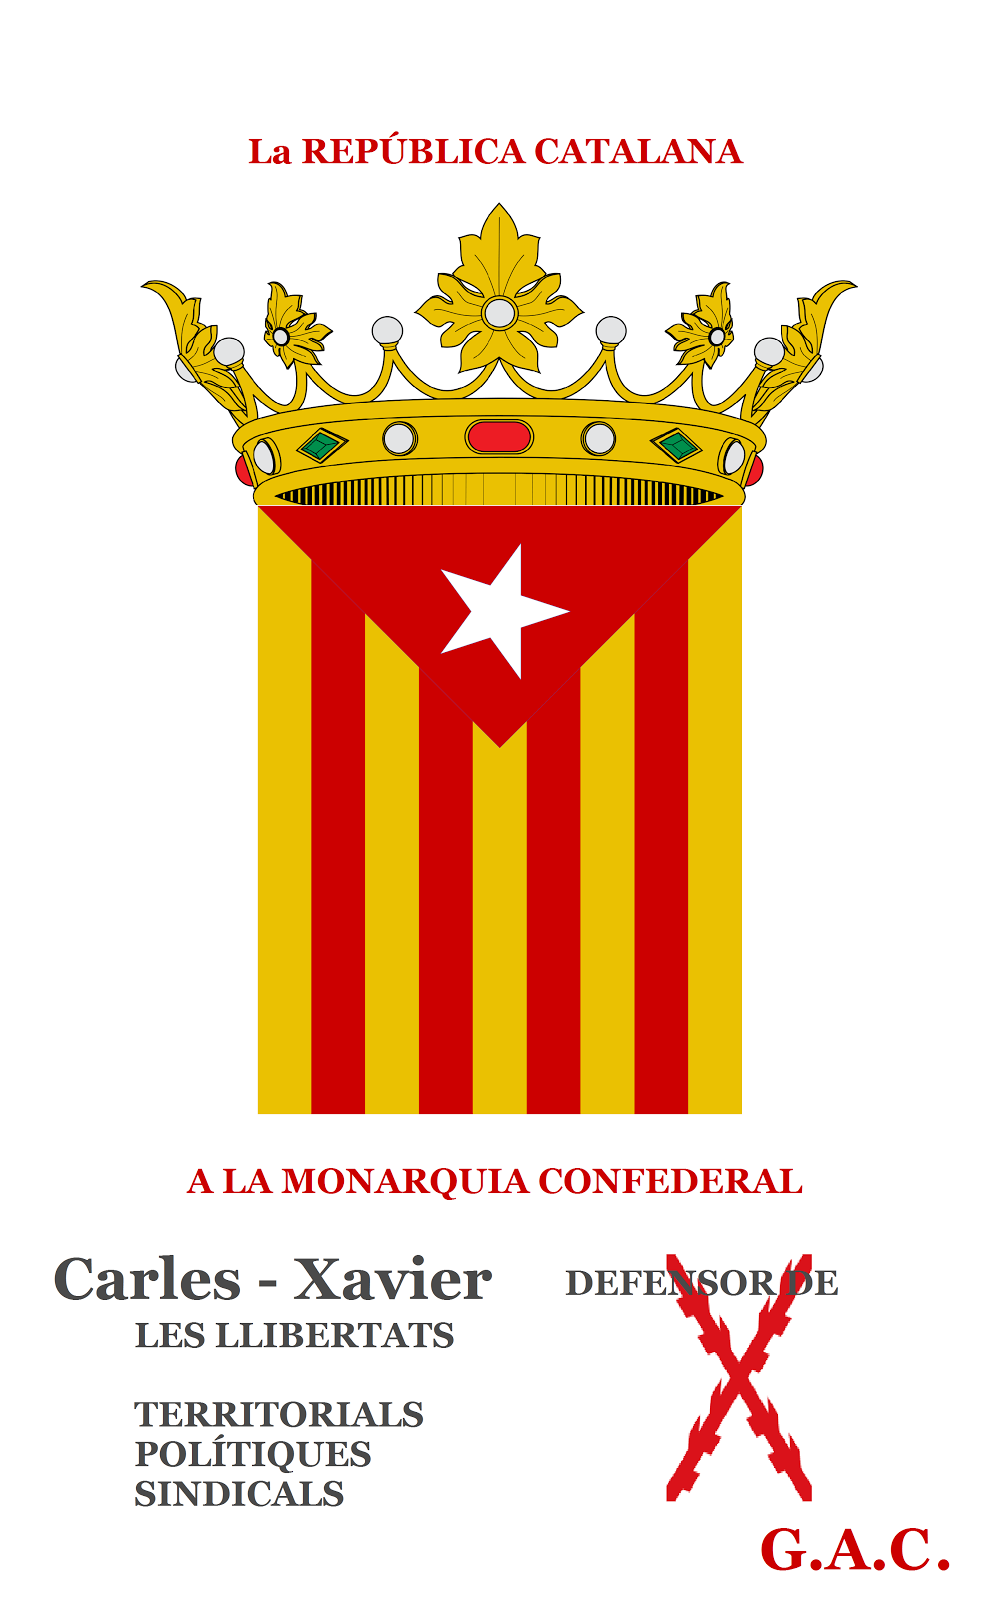 La República Catalana en la Monarquía Confederal